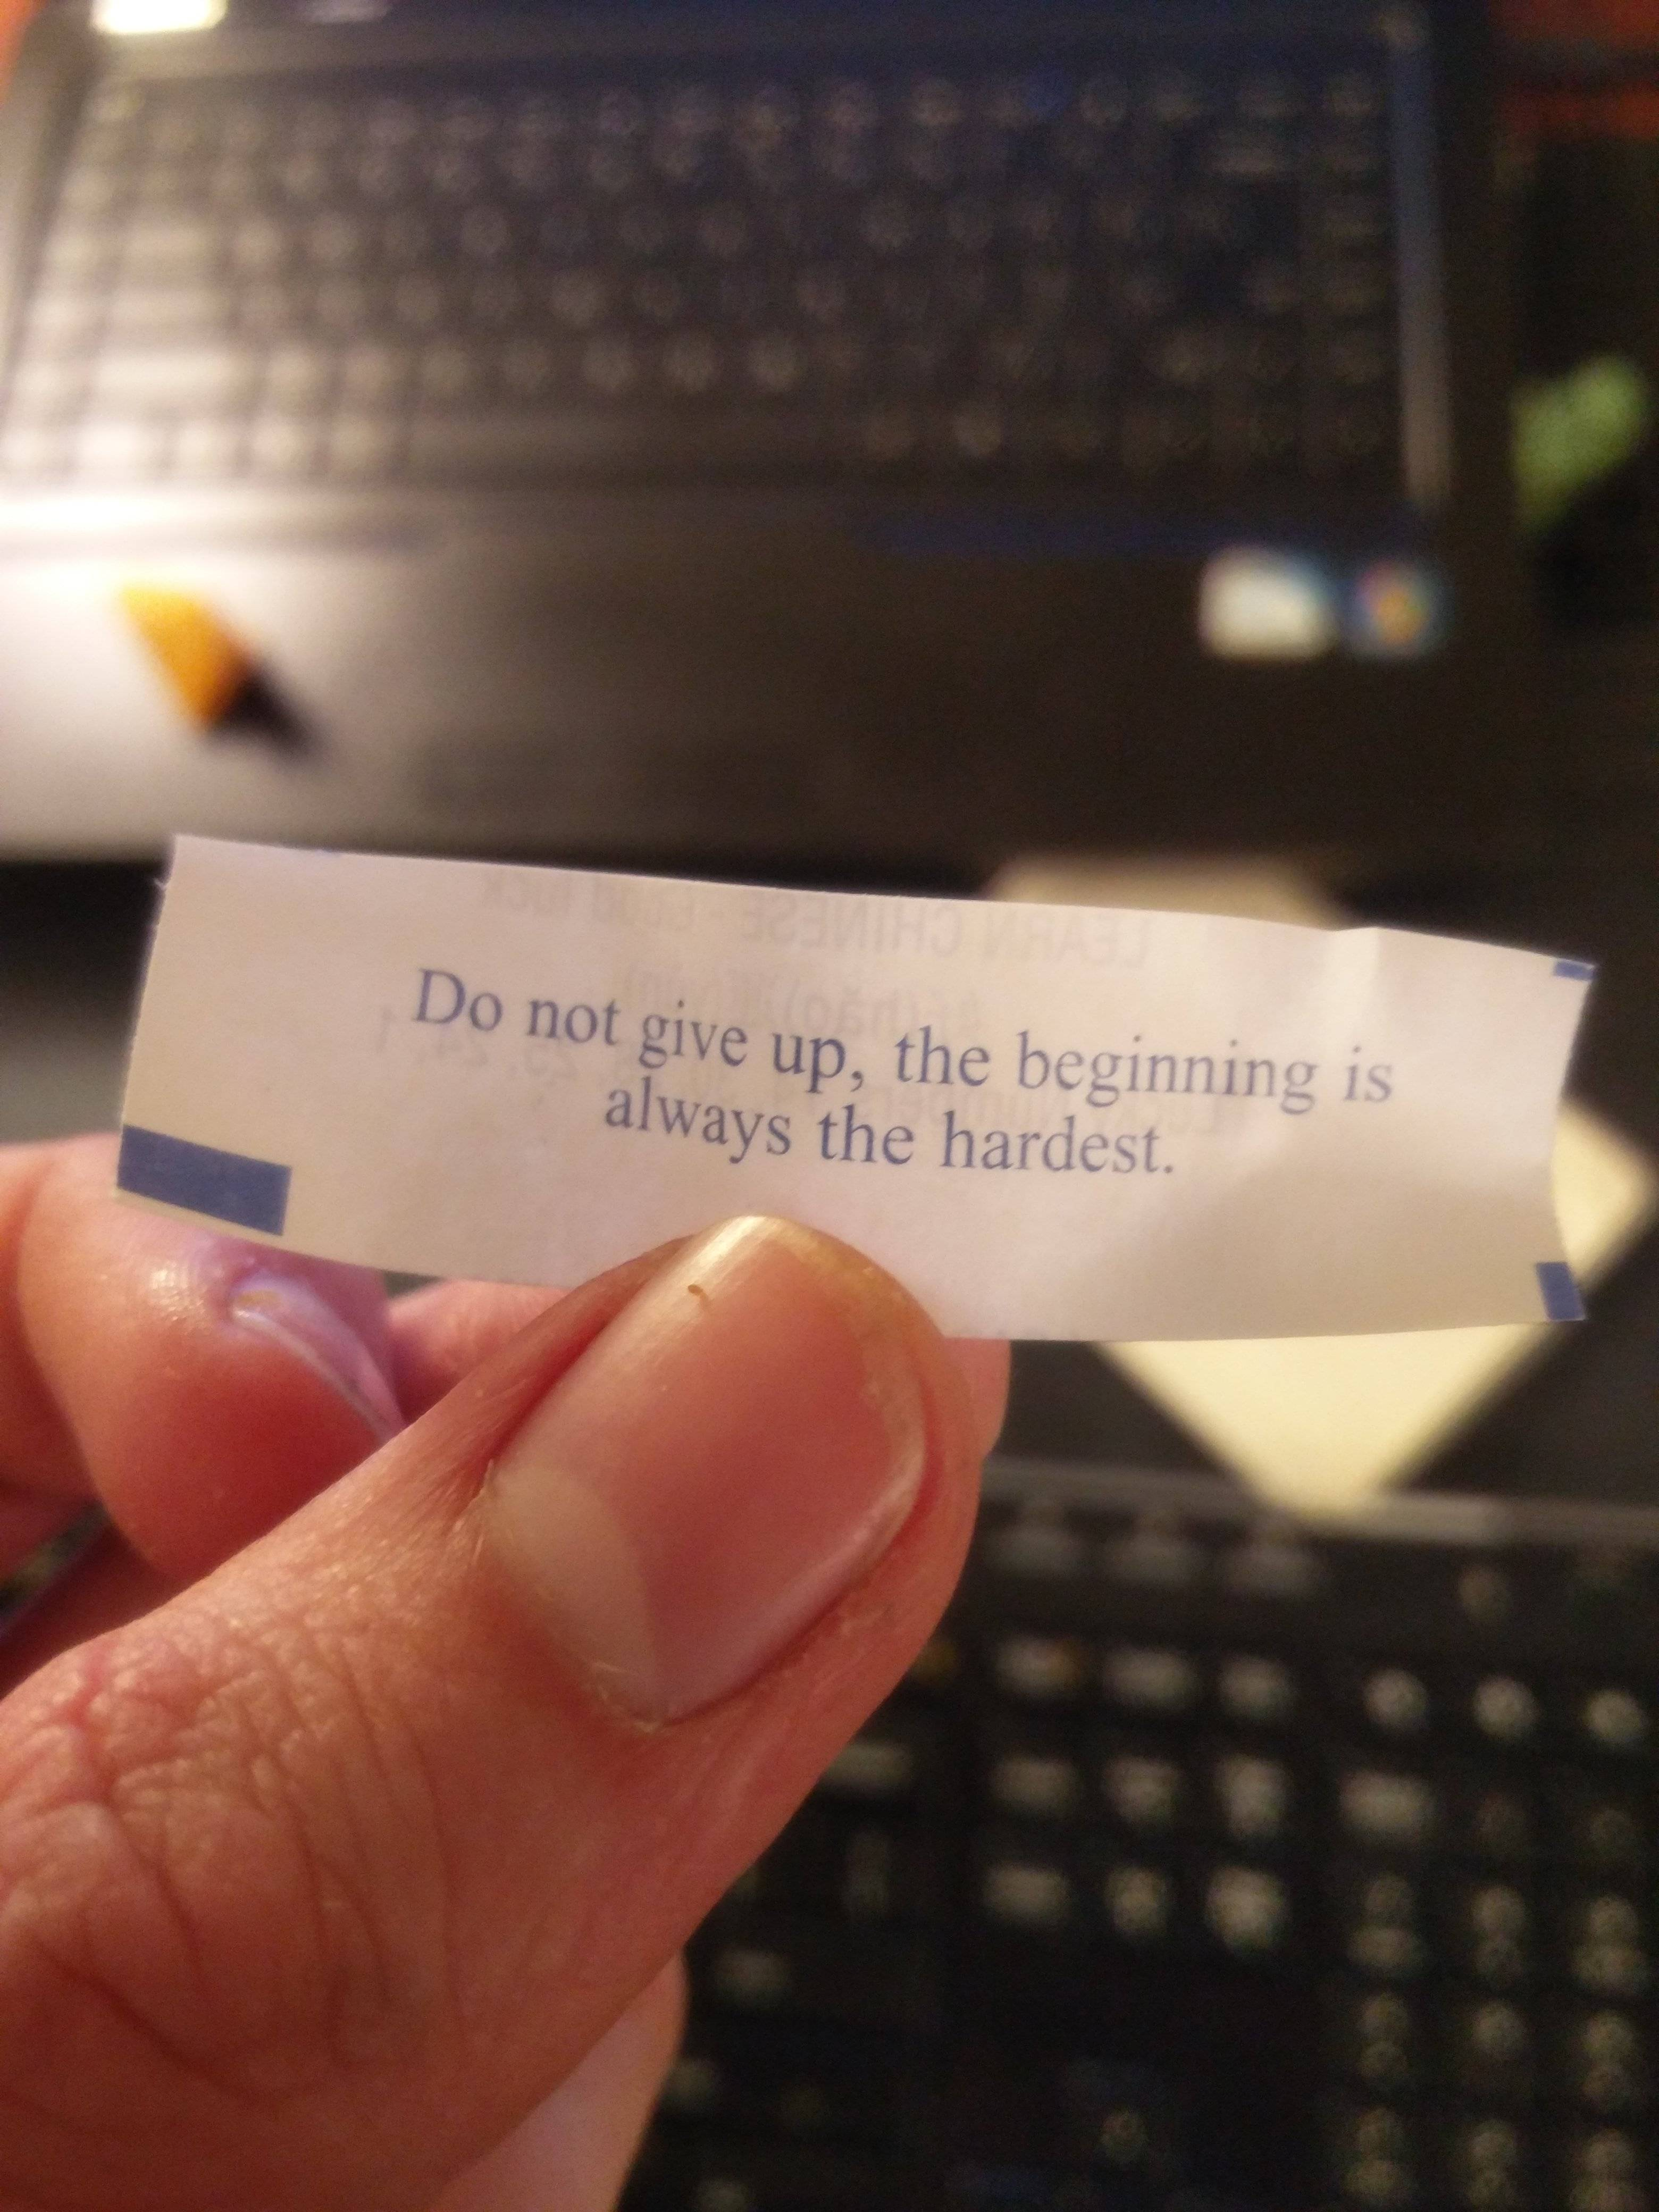 [Image] I may not believe in god, but I'm starting to believe in fortune cookies, cause it appears they believe in me.